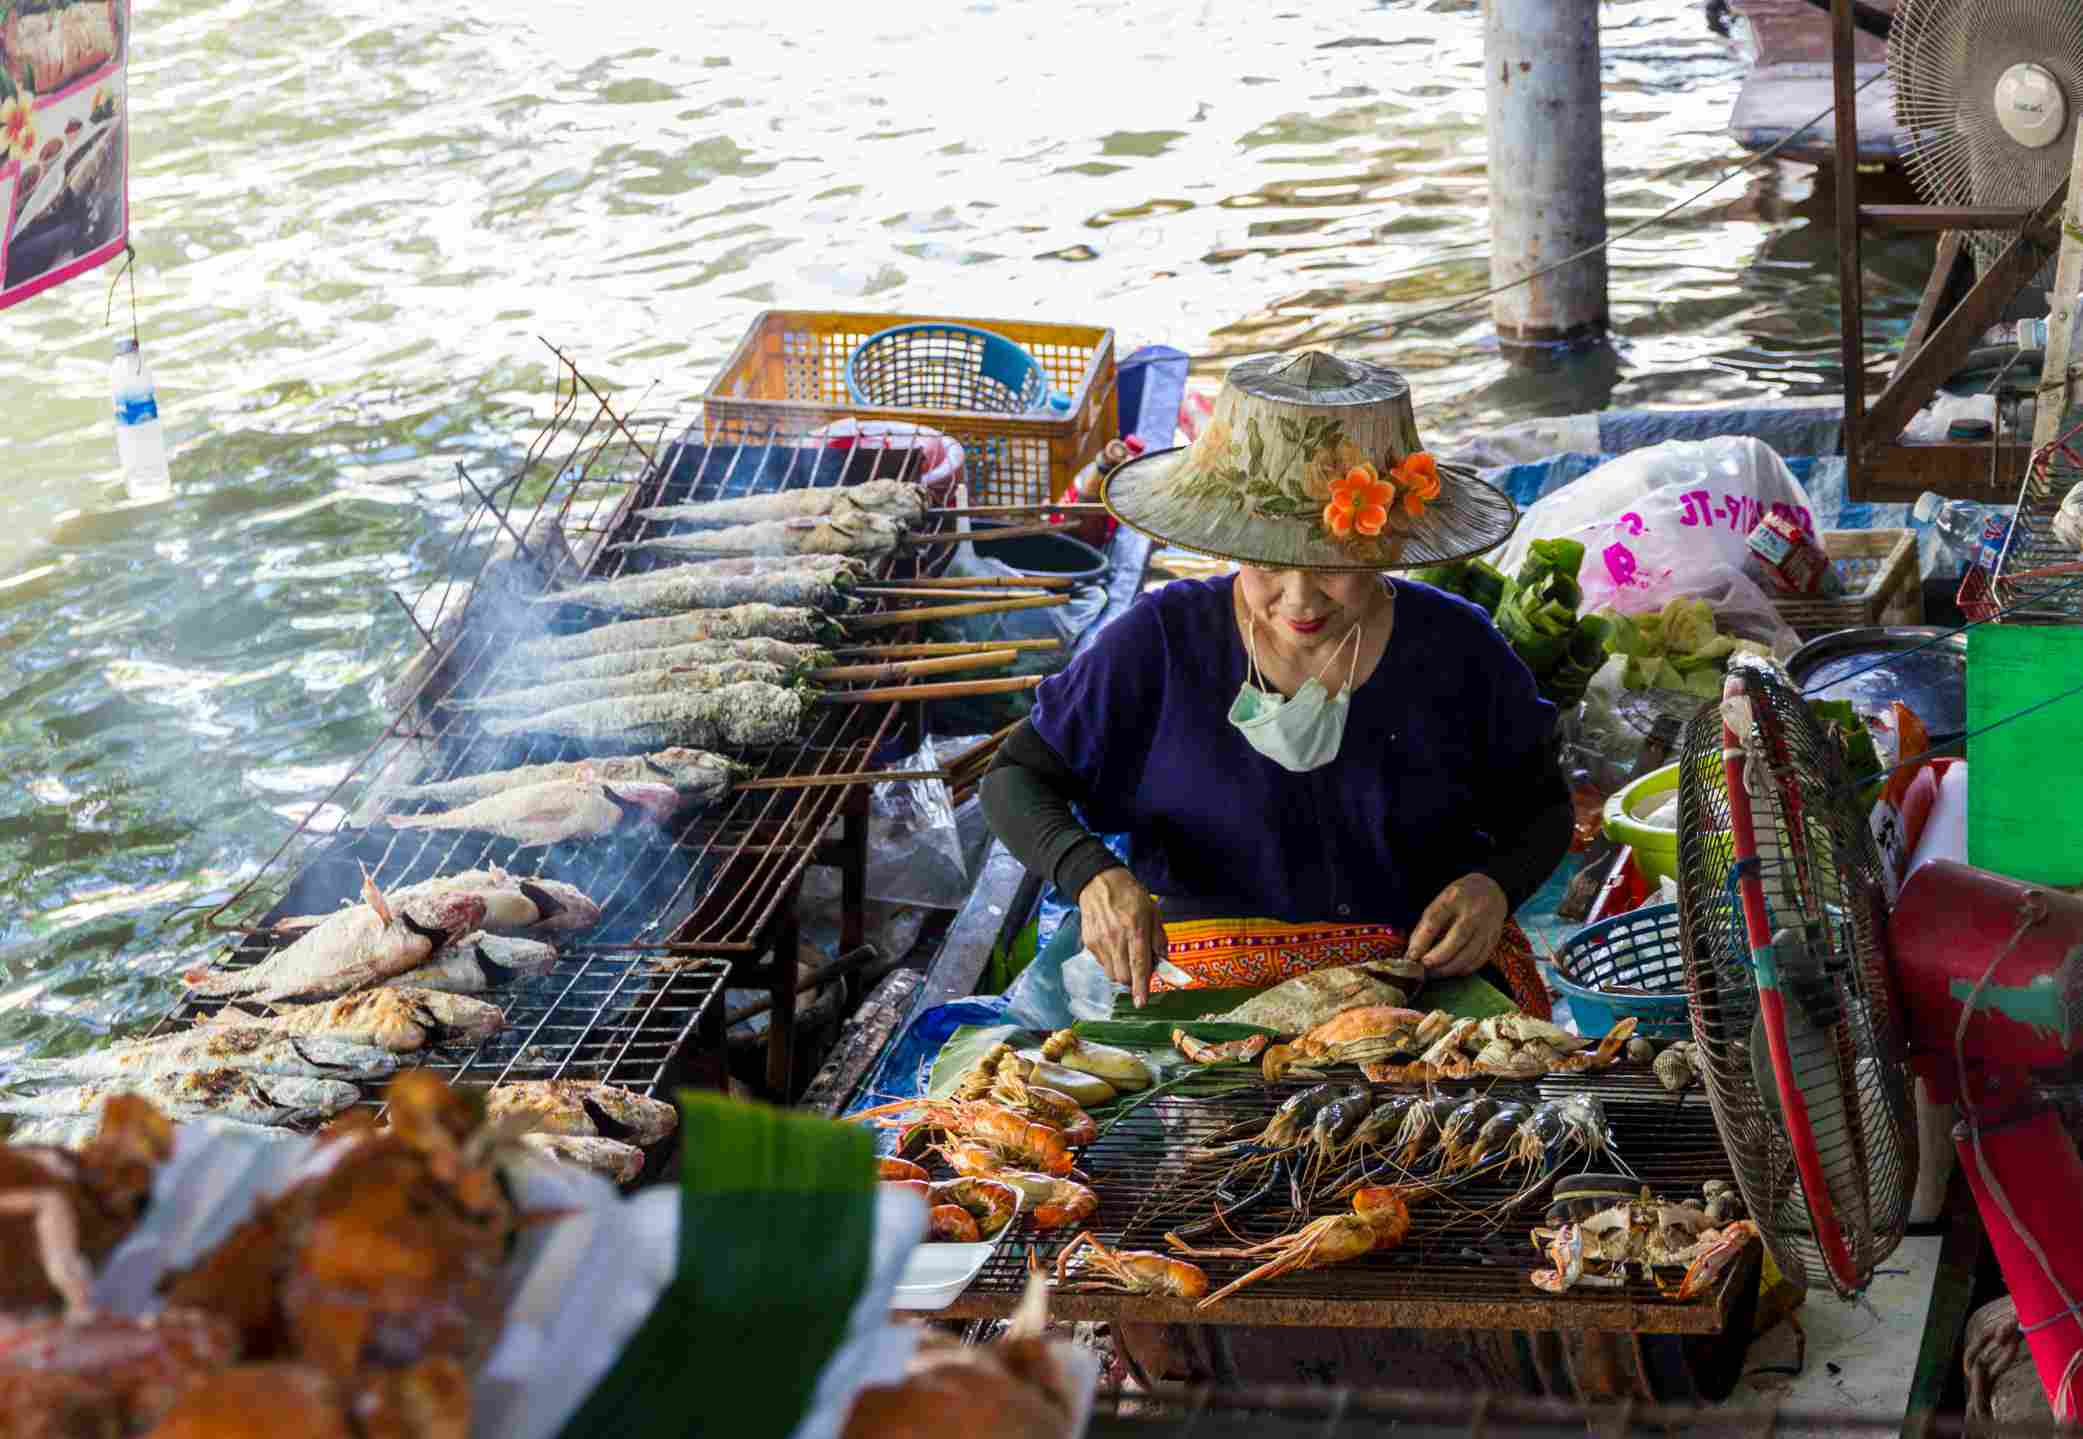 Thai woman grills sea food in a boat at Taling Chan Floating Market